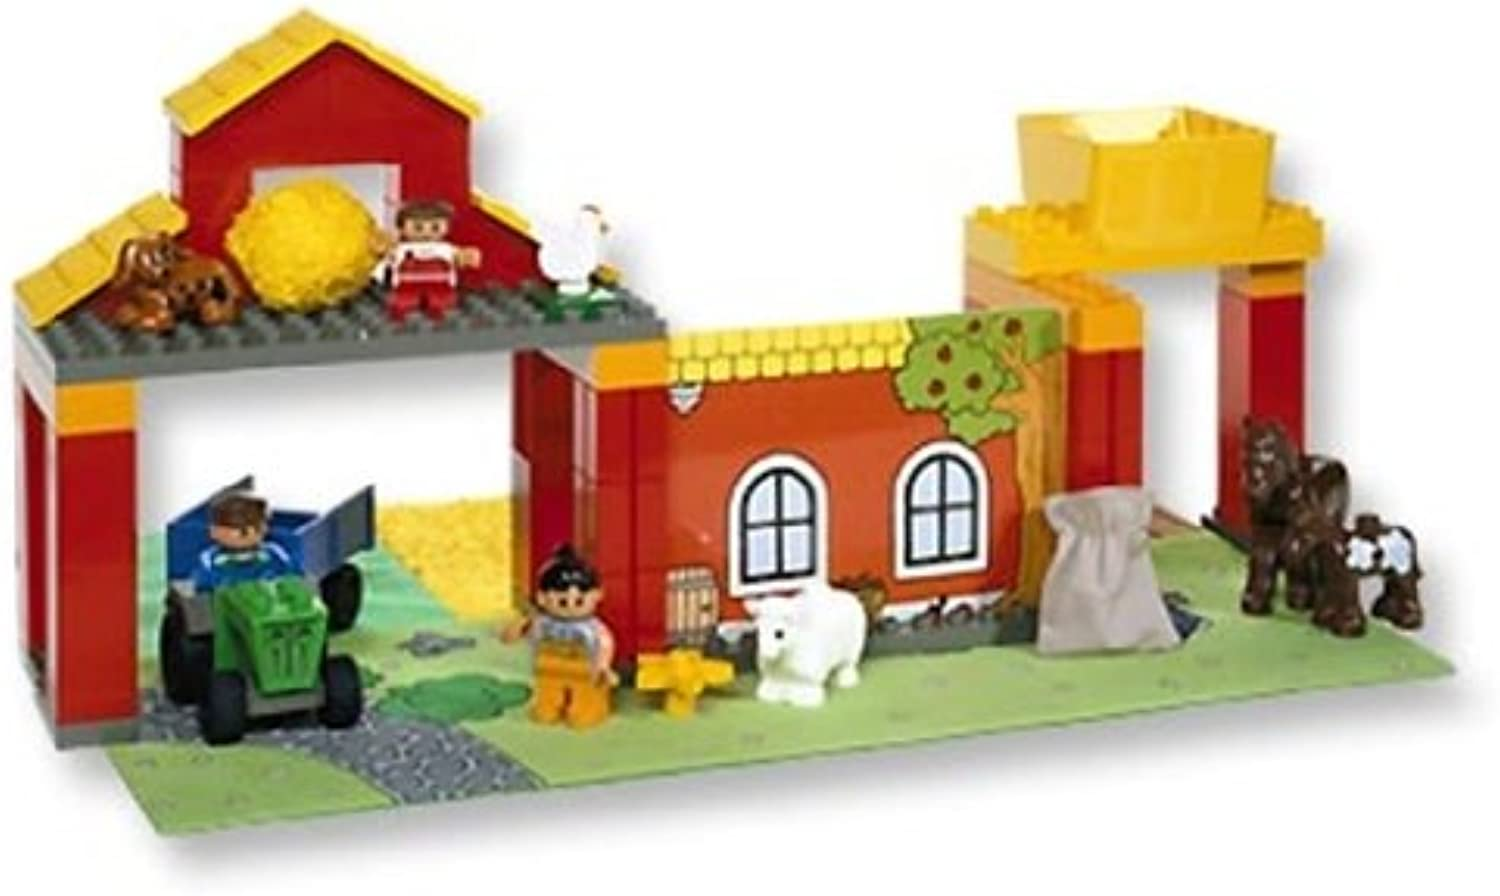 LEGO Duplo 3618 - Ville farm with family